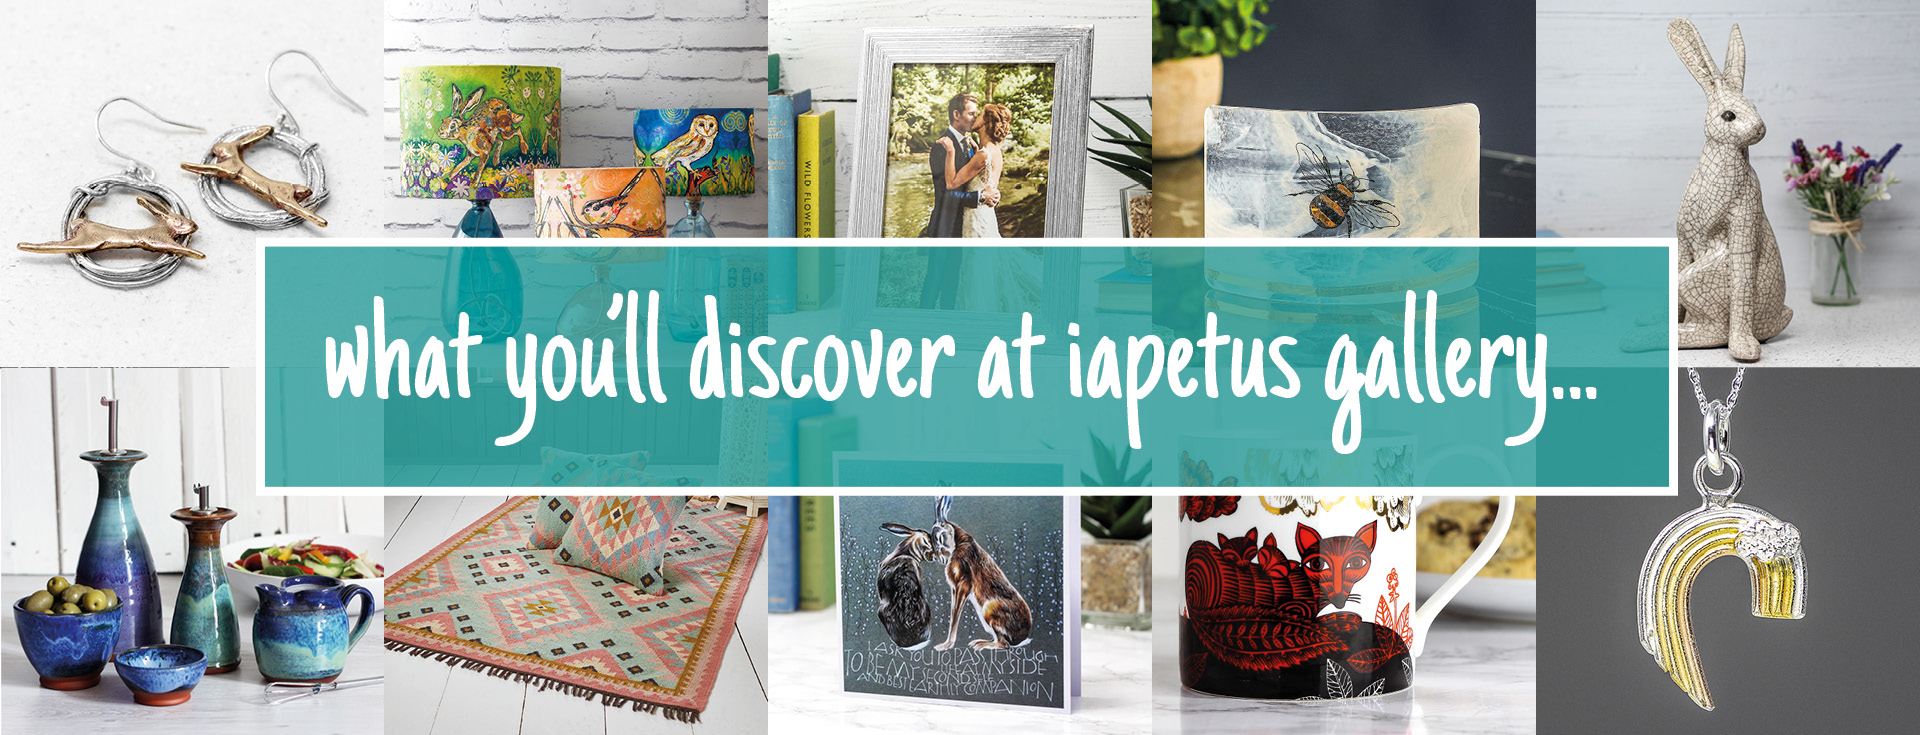 about-iapetus-gallery-what-you-ll-discover.jpg